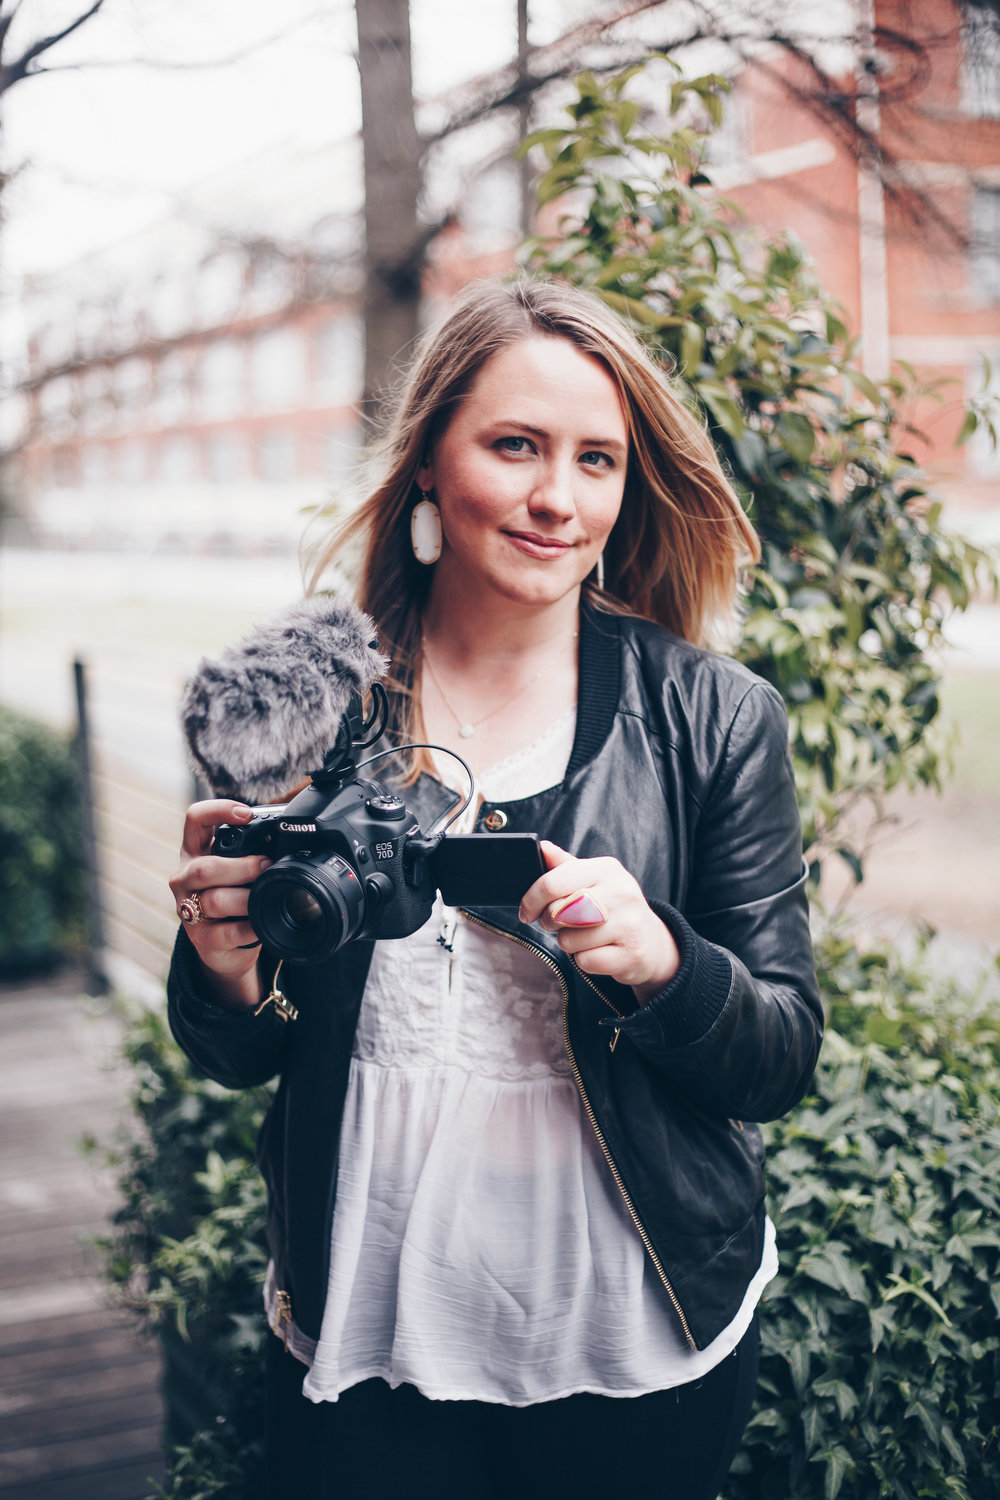 Meet Brittany, documentary film producer + videographer behind @bstoried